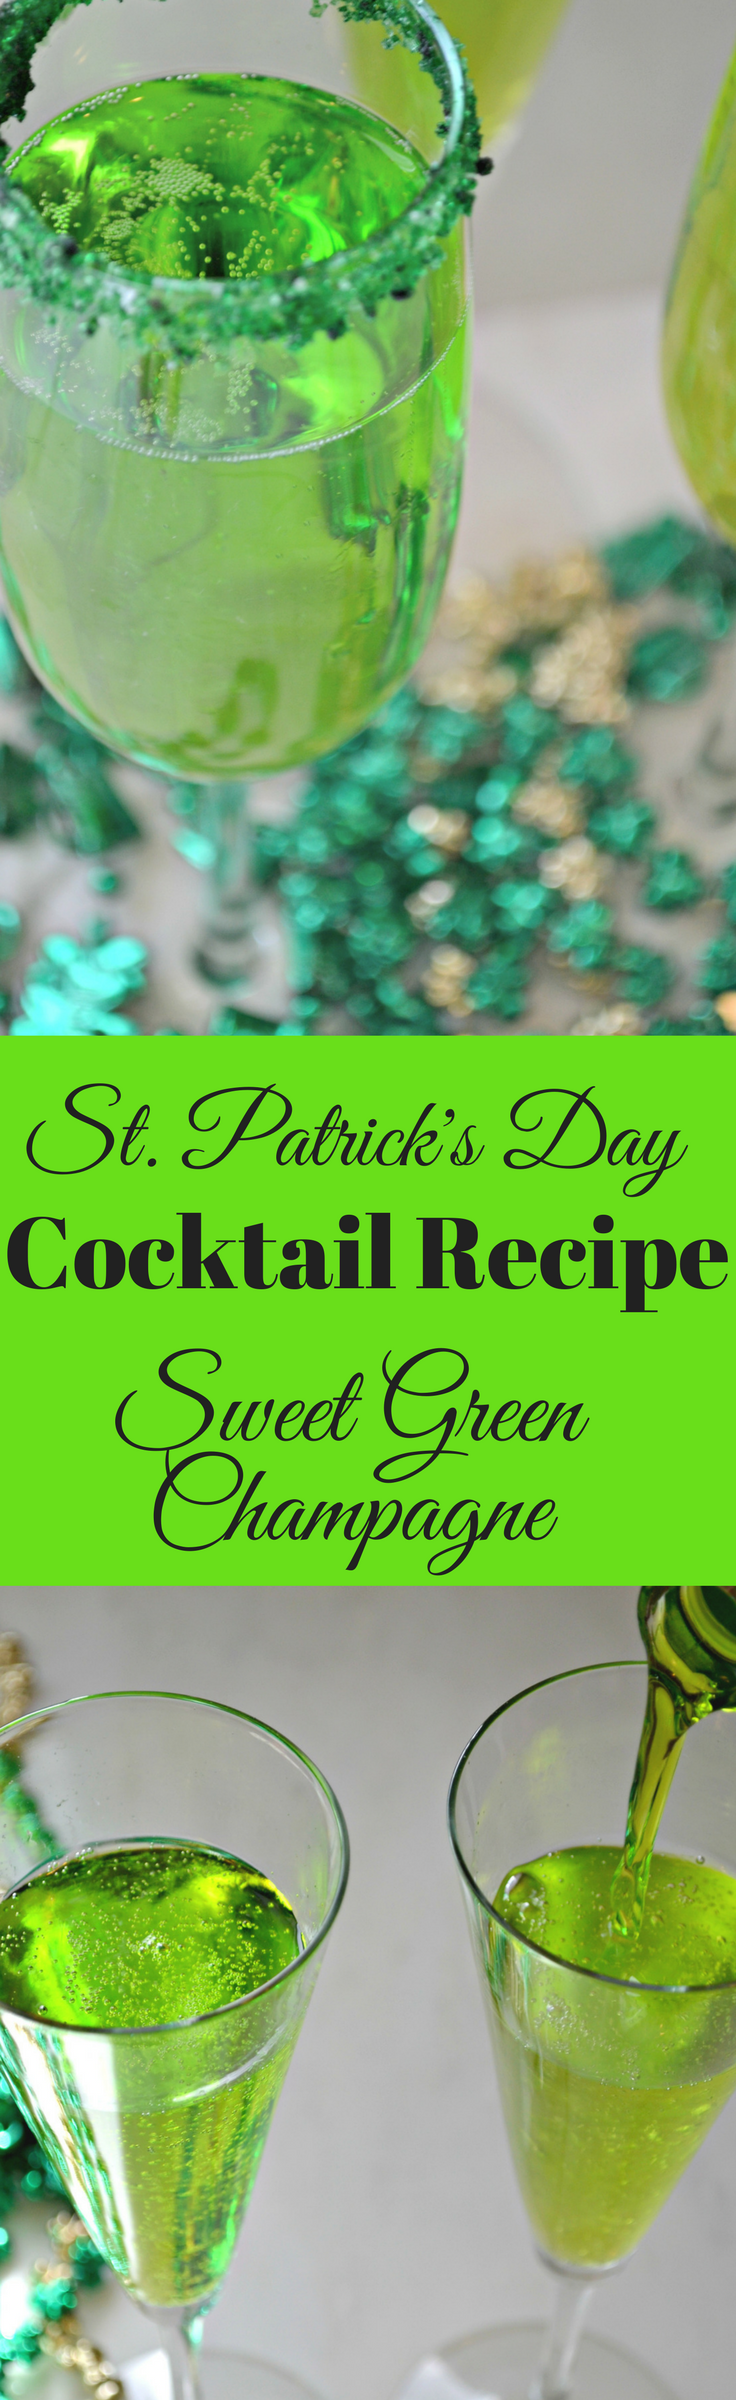 St. Patrick's Day Drinks - This Sweet Green Champagne Cocktail is perfect all month long!